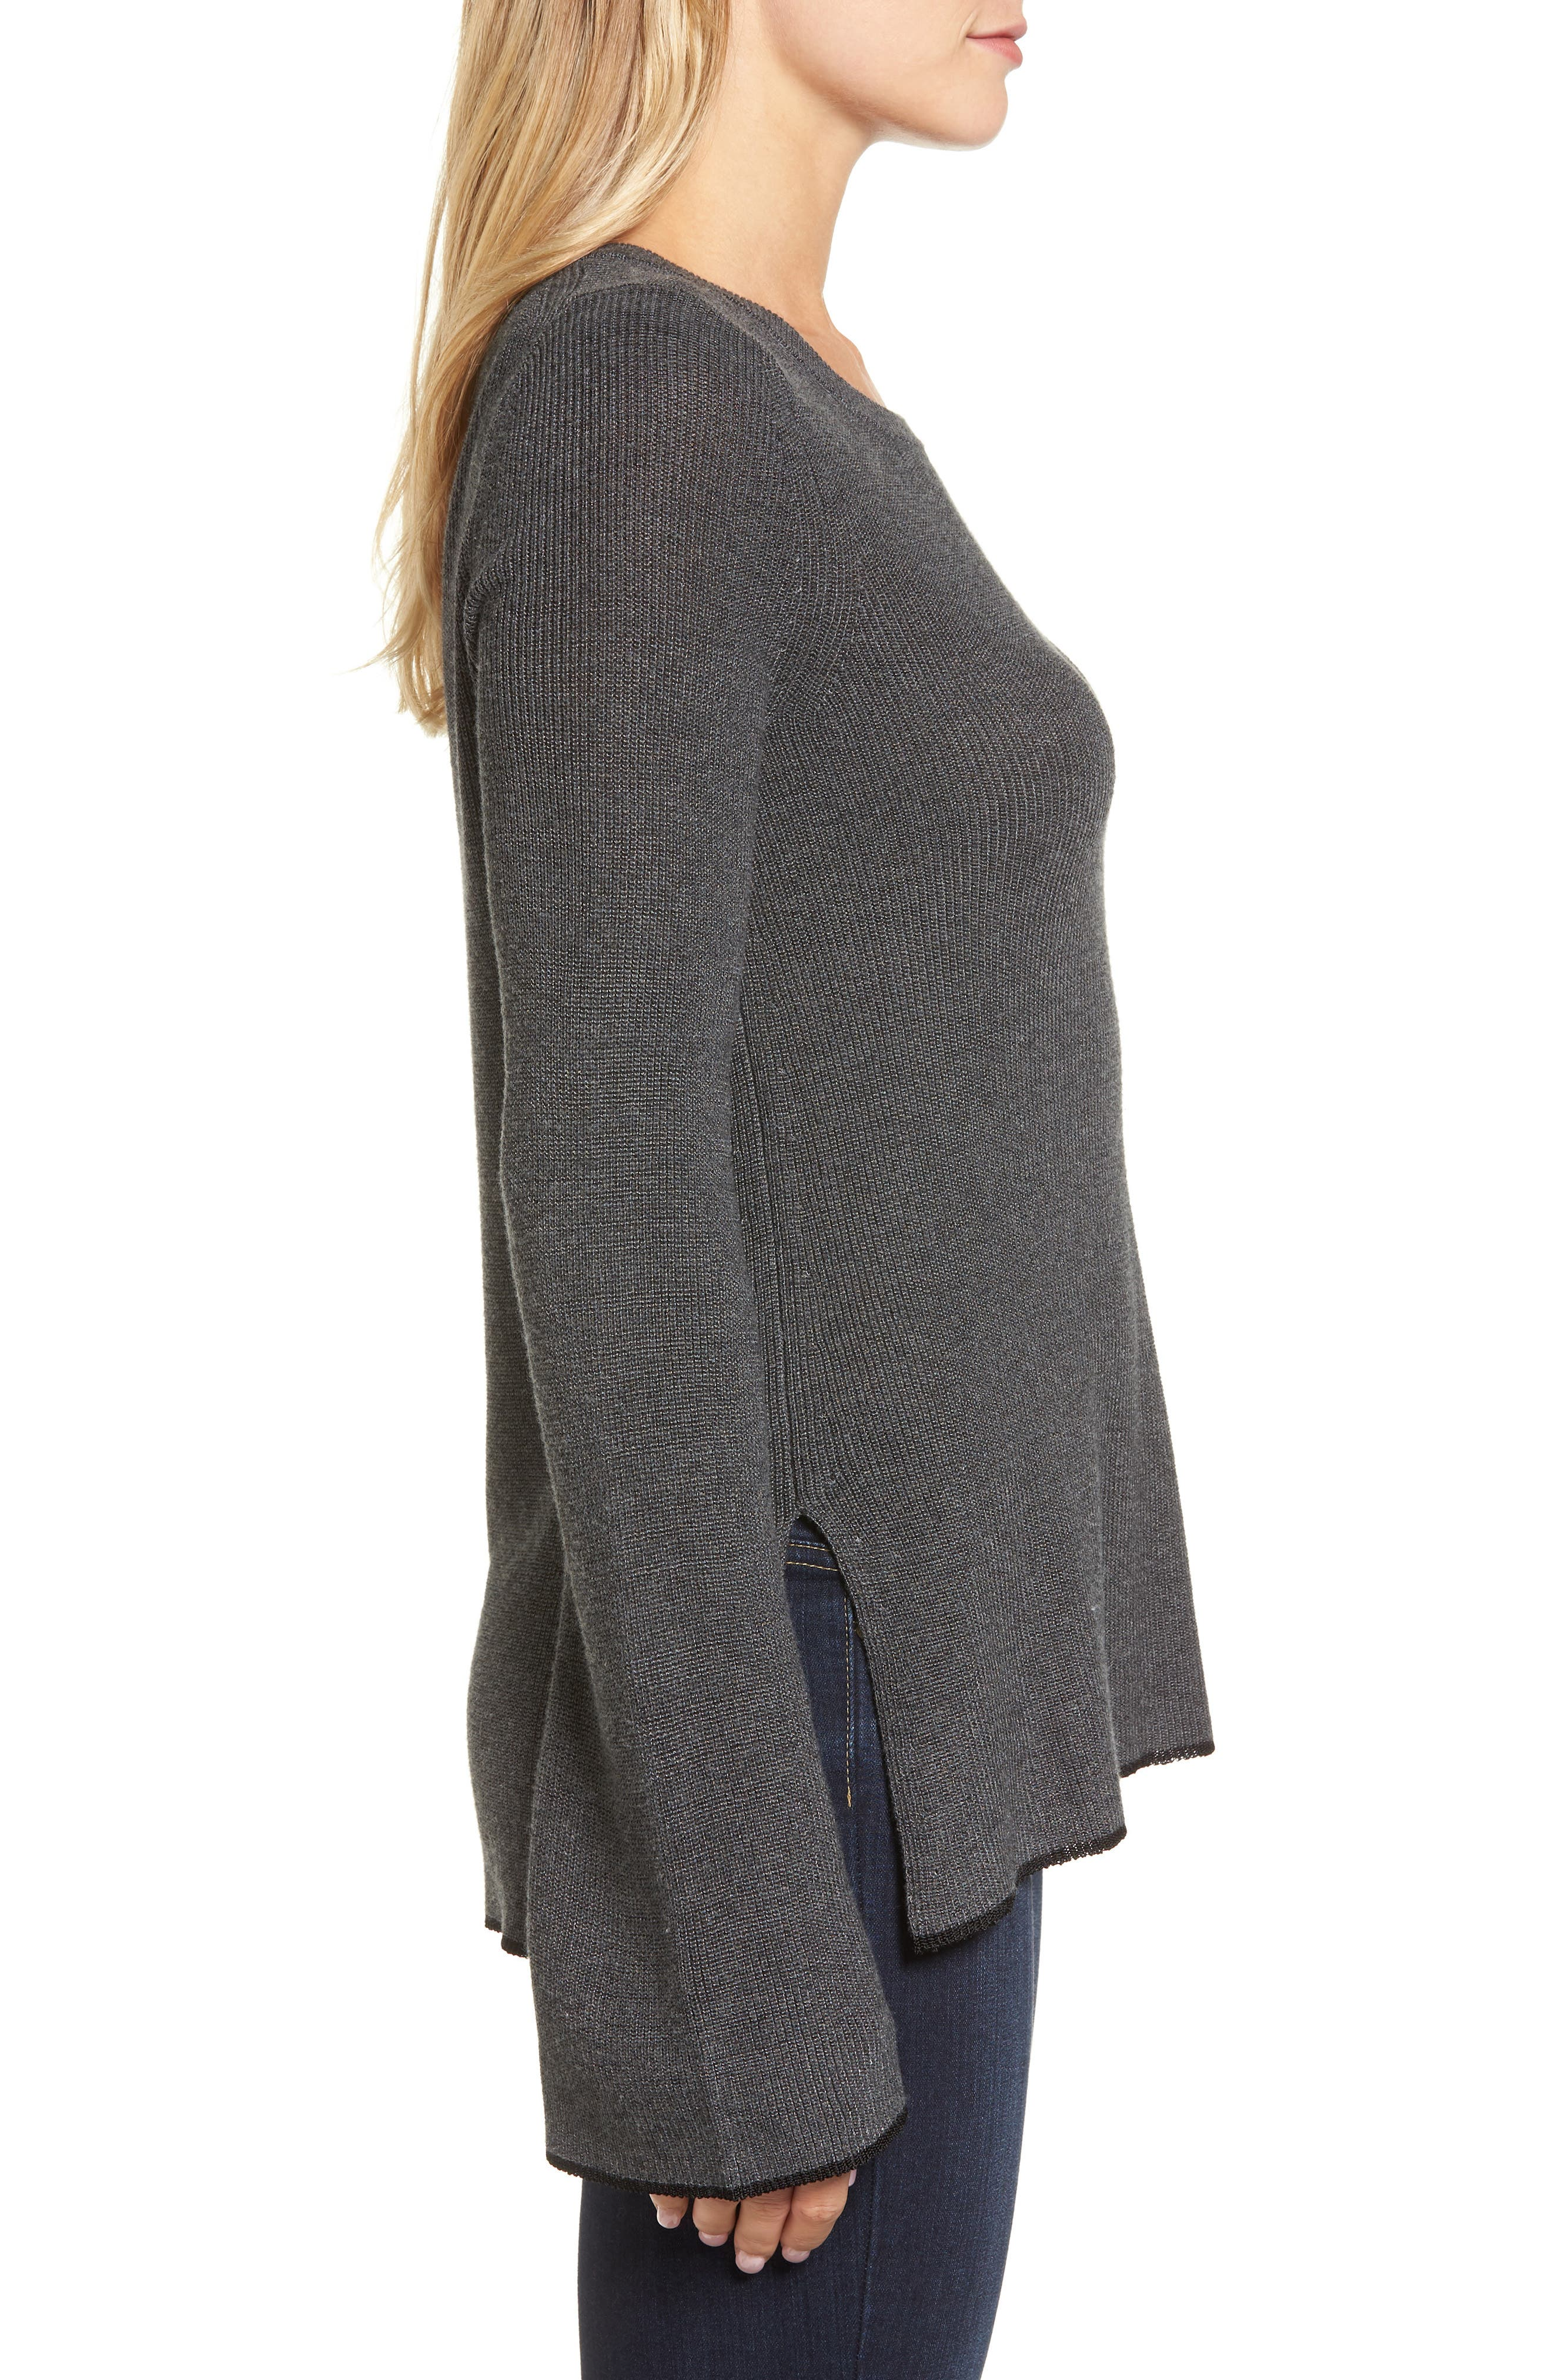 Alternate Image 3  - Vince Camuto Tipped Bell Sleeve Sweater (Regular & Petite)